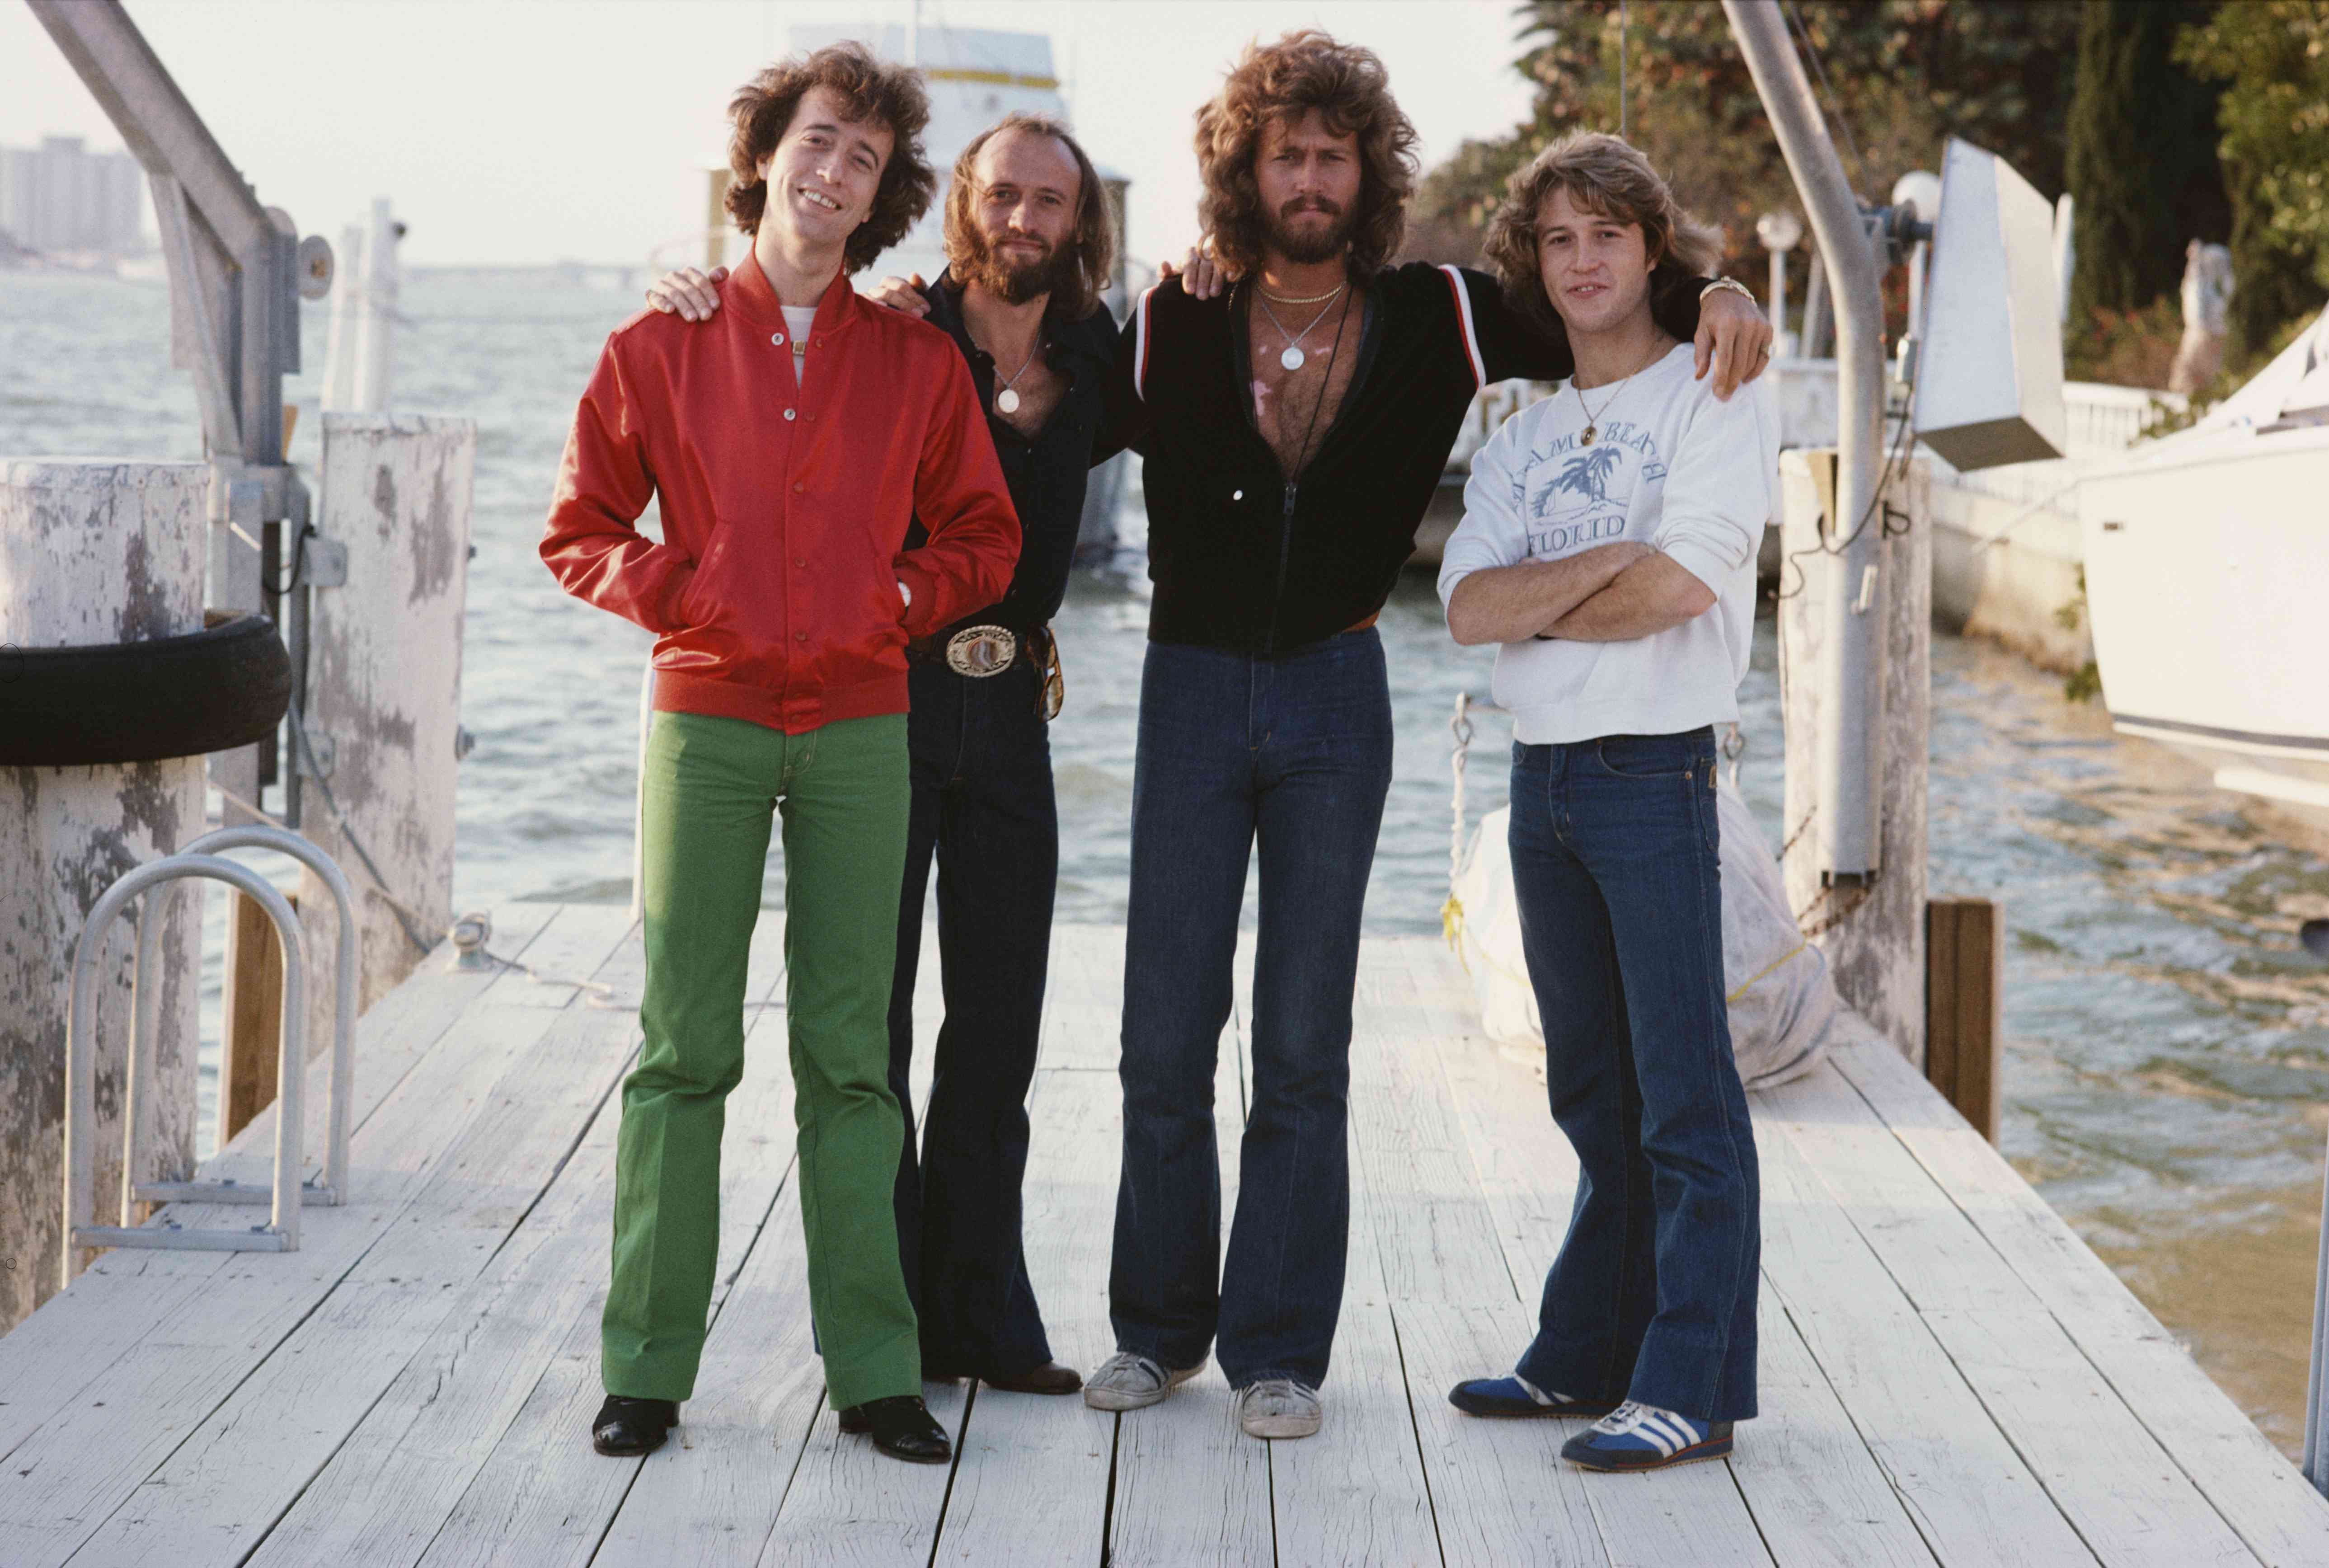 Bee Gees Brothers in Miami, Florida in 1978